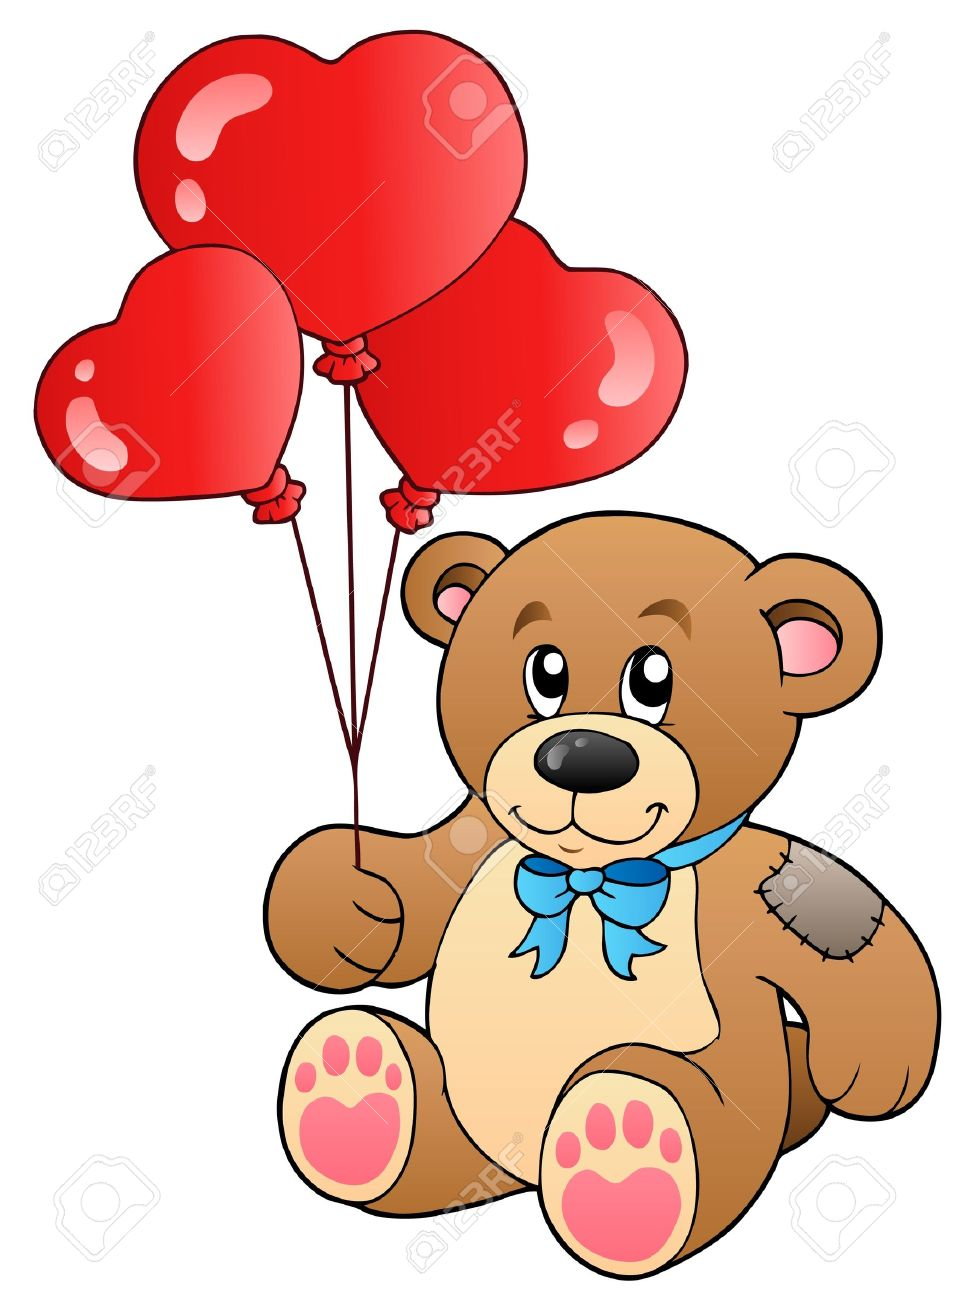 Cute Teddy Bear With Balloons Royalty Free Cliparts, Vectors, And ...